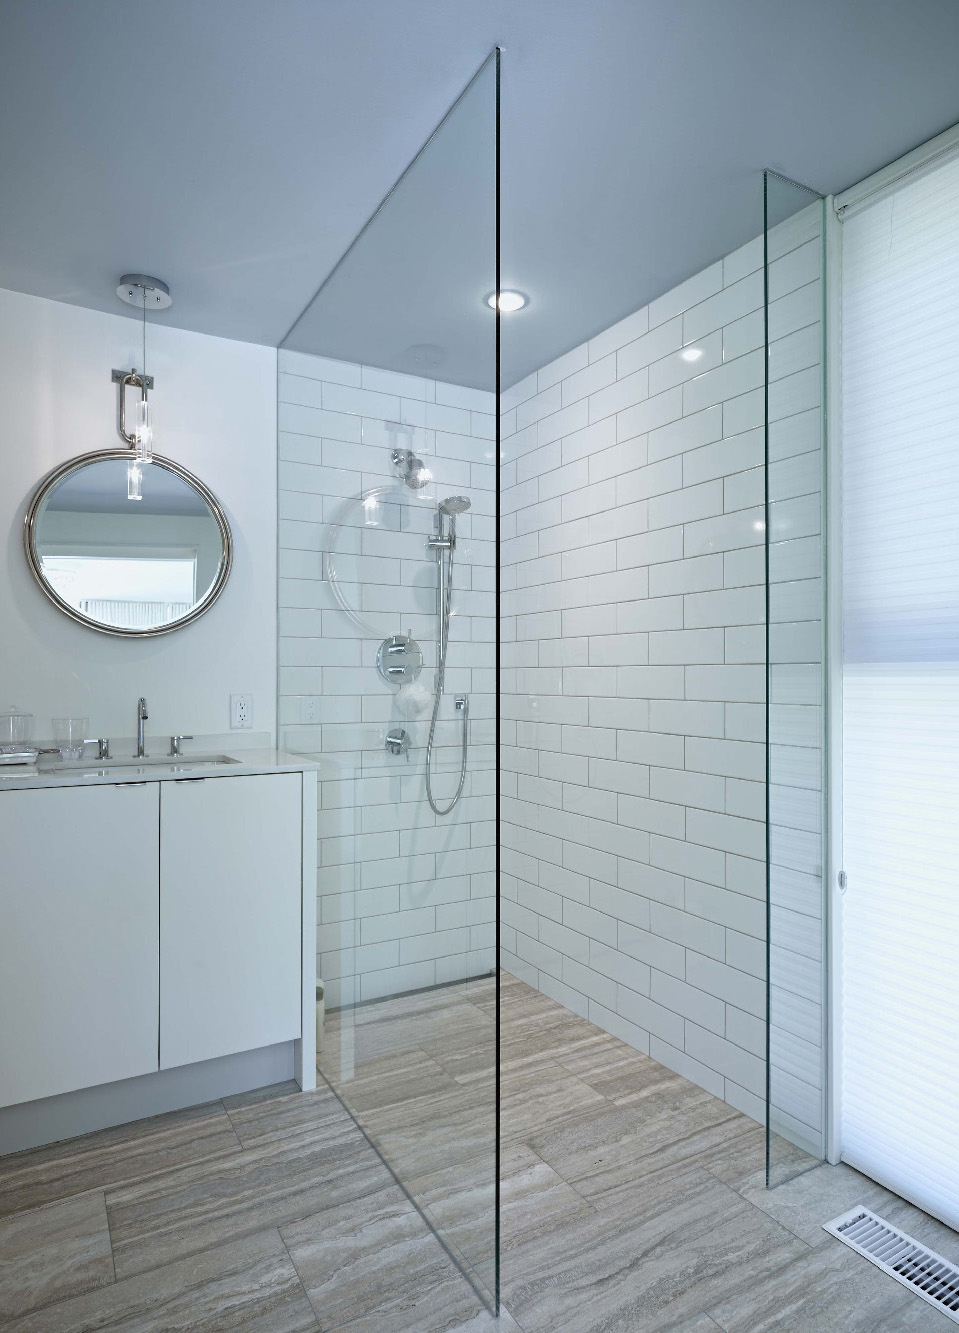 Bathroom with frameless glass shower and subway tile backsplash, with travertine stone tile floors